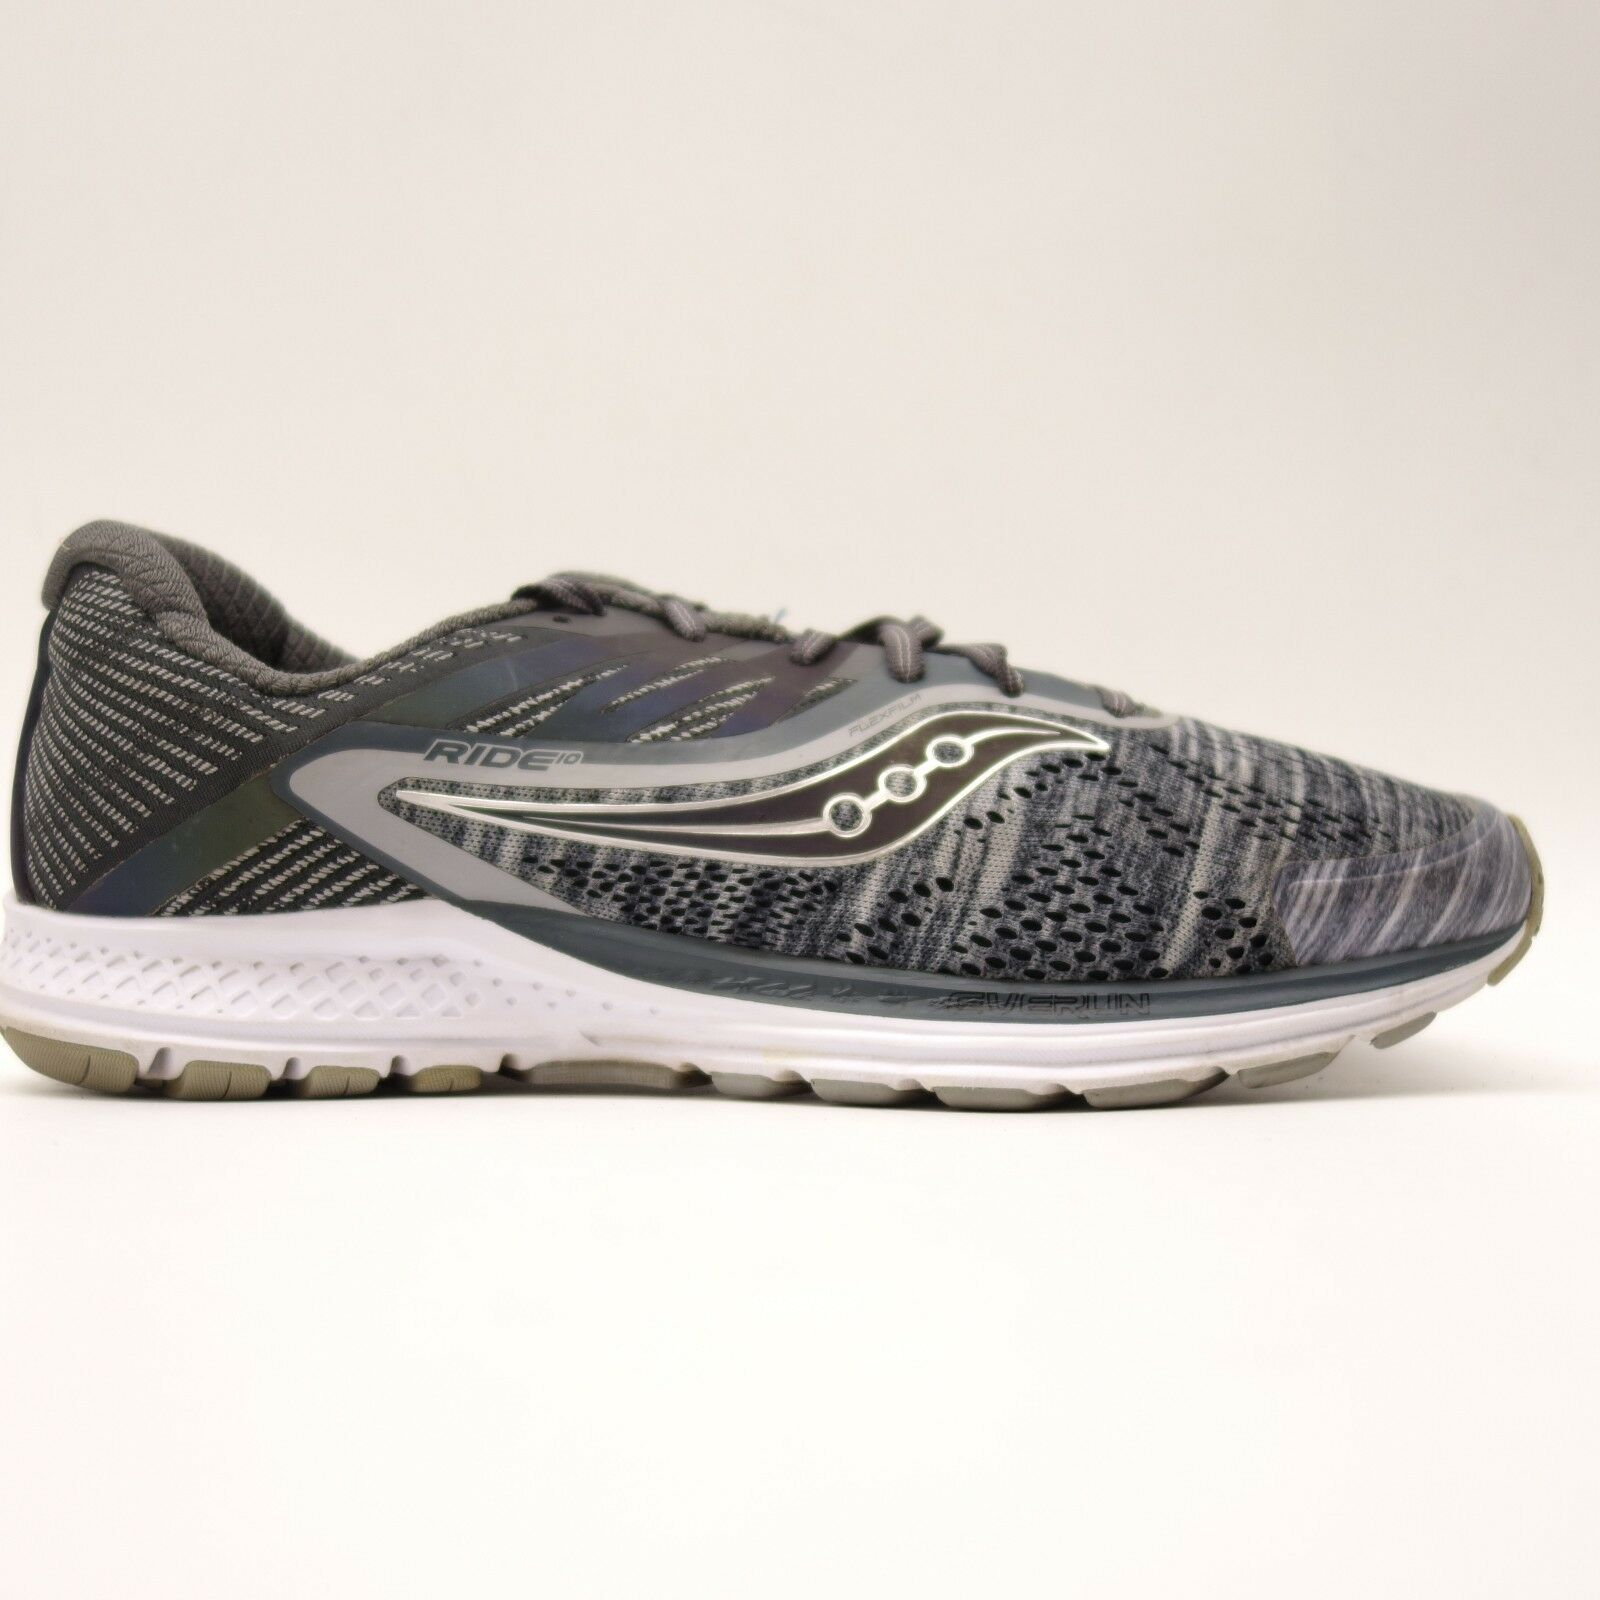 Saucony Mens Ride 10 Everun Mesh Athletic Support Training Running shoes Sz 10.5